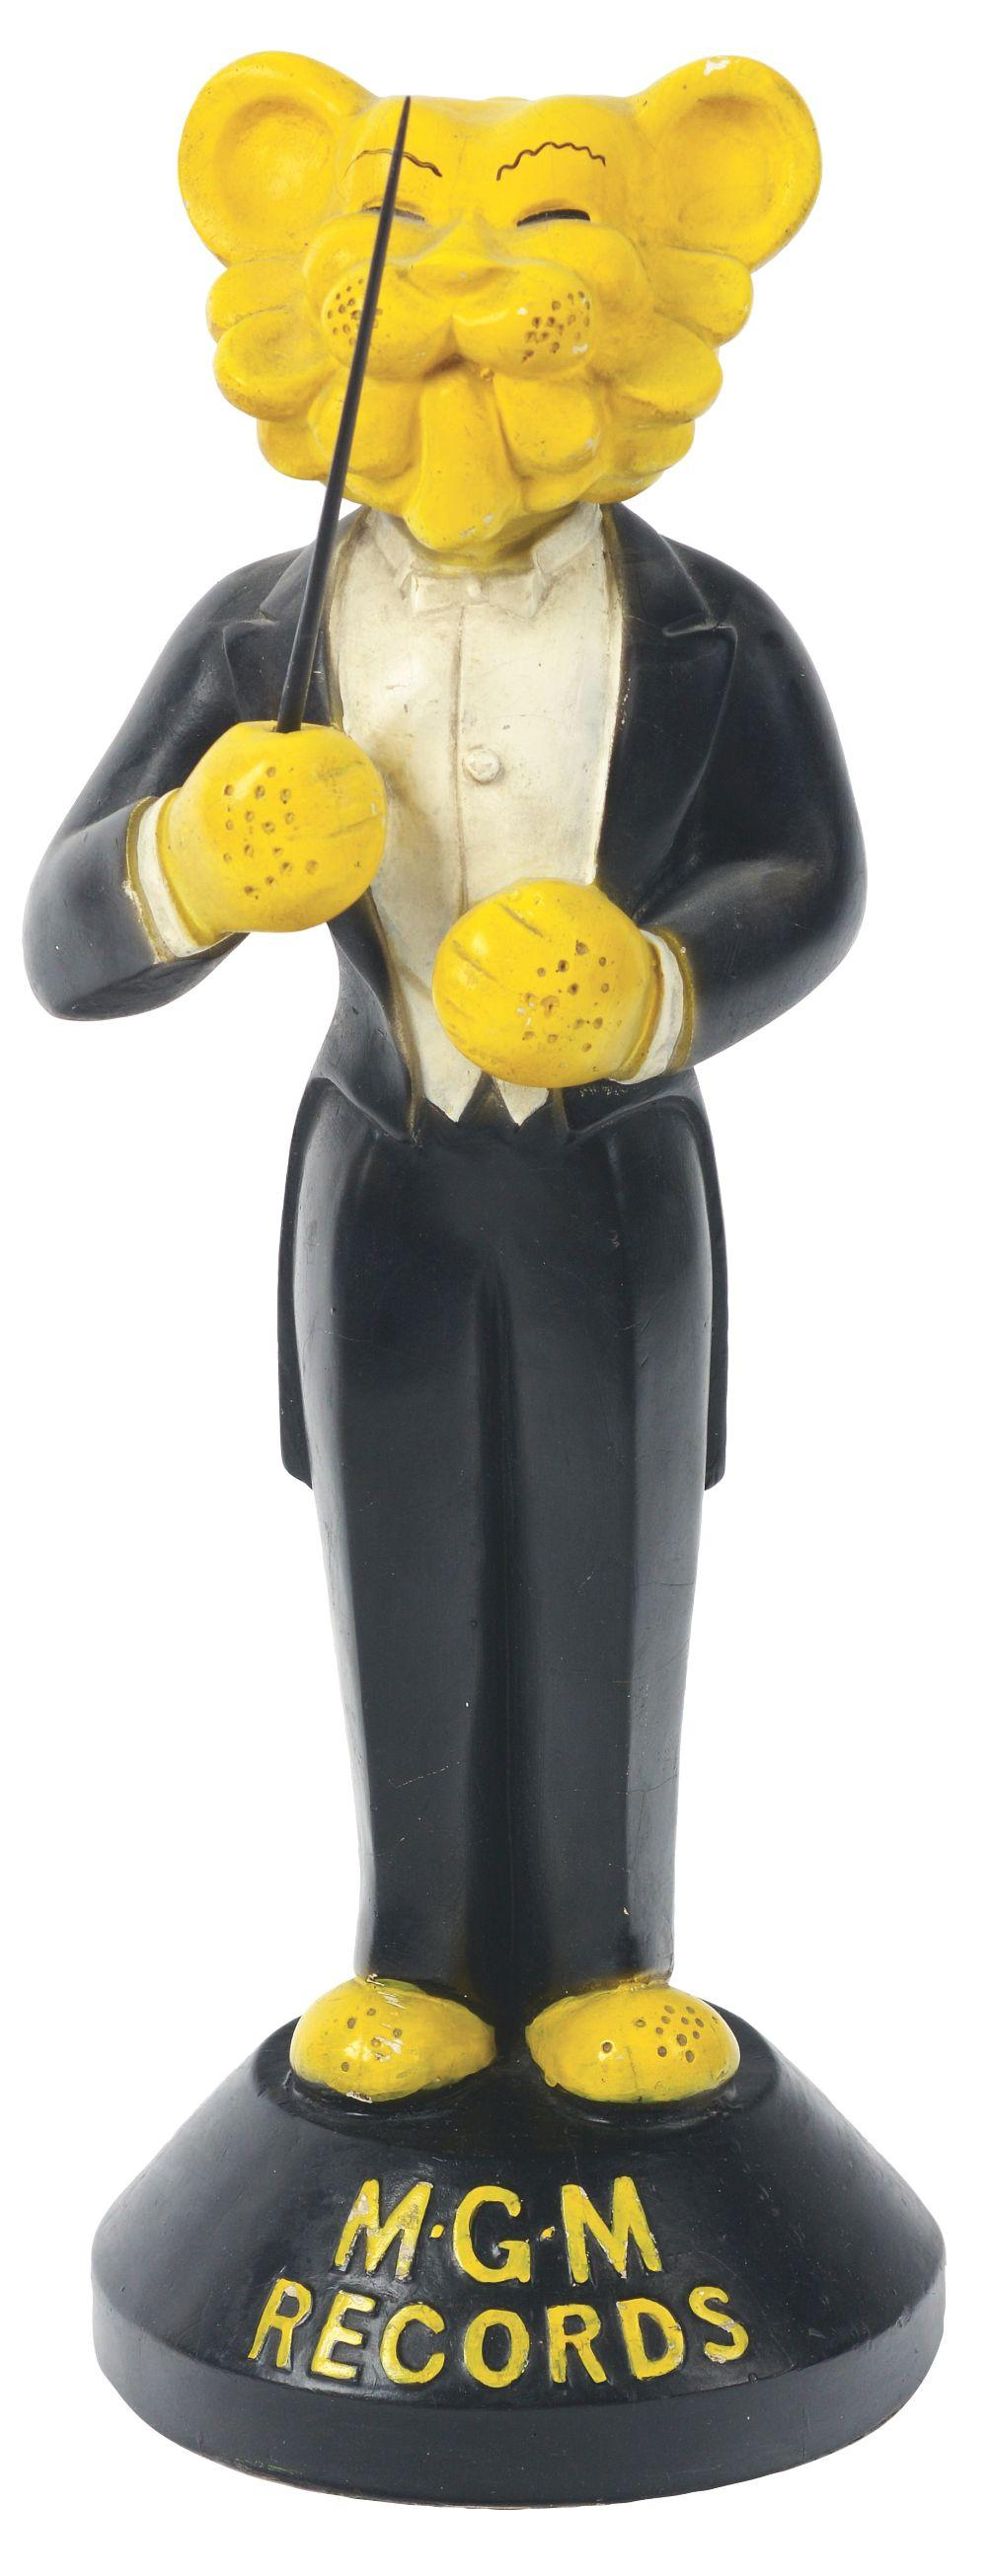 Lot 2585: MGM Records Advertising Figure.